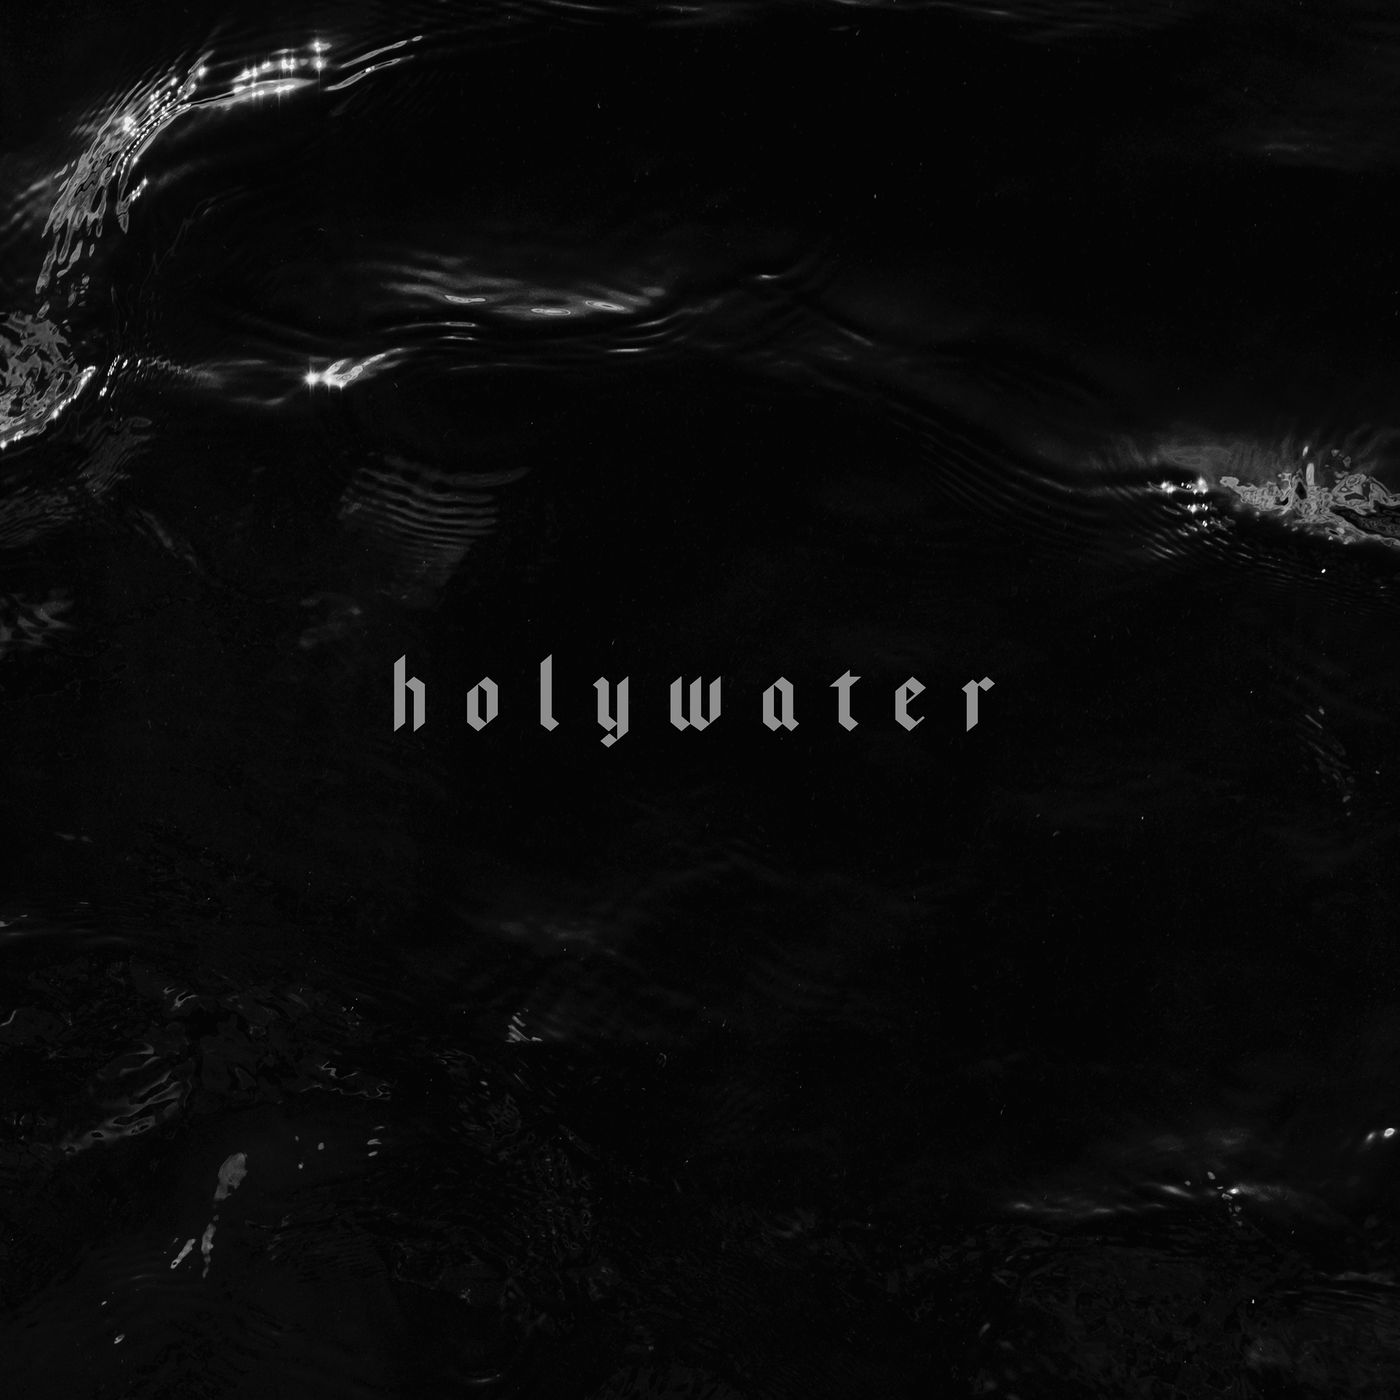 Volumes - holywater [single] (2020)